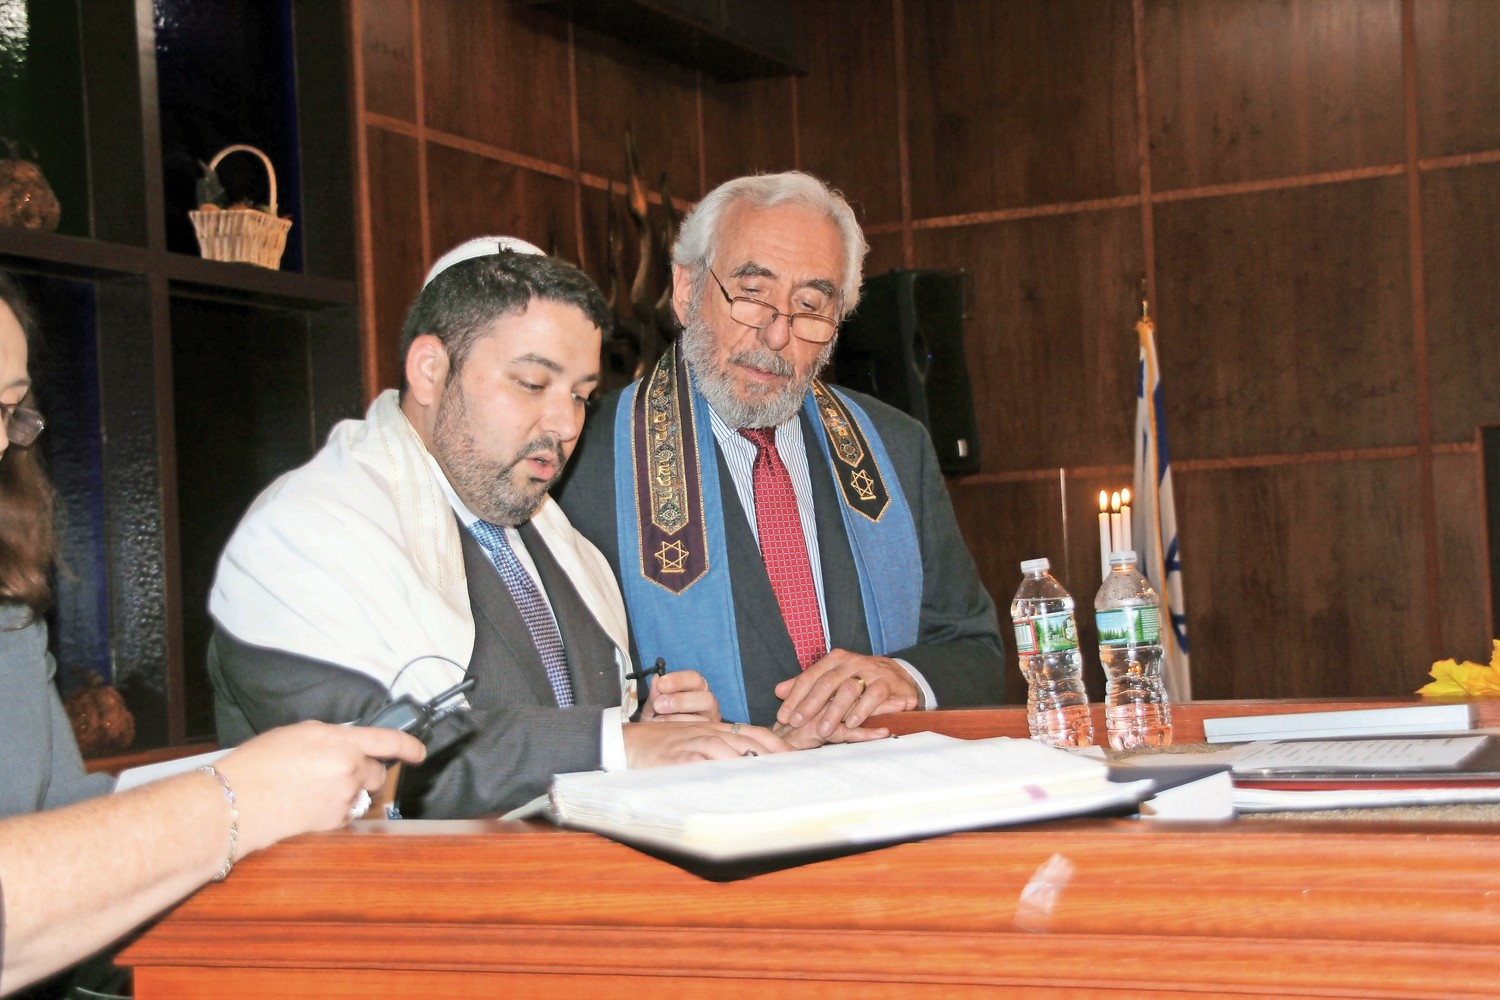 Rabbi Daniel Bar-Nahum, of Temple Emanu-El of East Meadow, and Rabbi Howard Nacht, of Temple B'Nai Torah in Wantagh, led a joint Simchat Torah service last October.